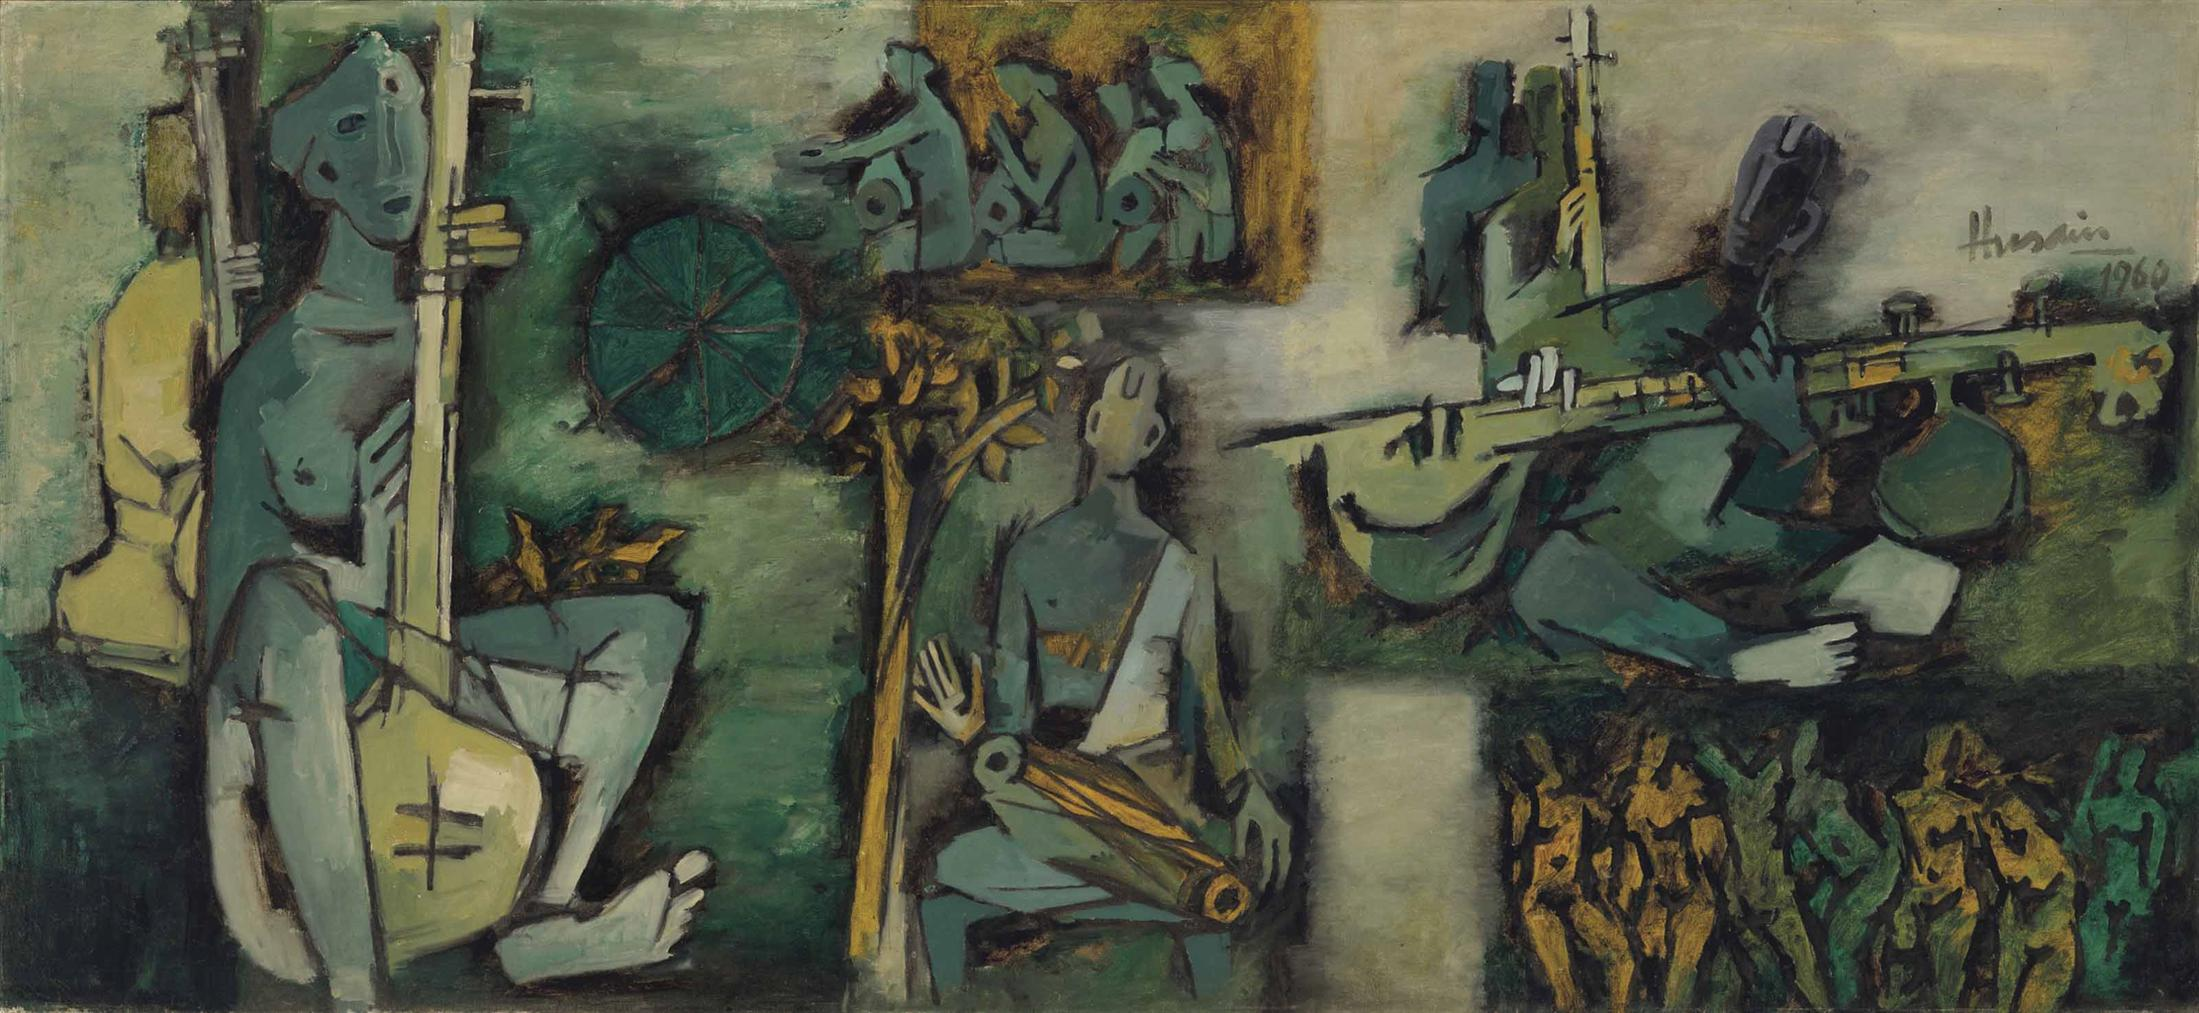 Maqbool Fida Husain-Green Song (Ragamala Series)-1960